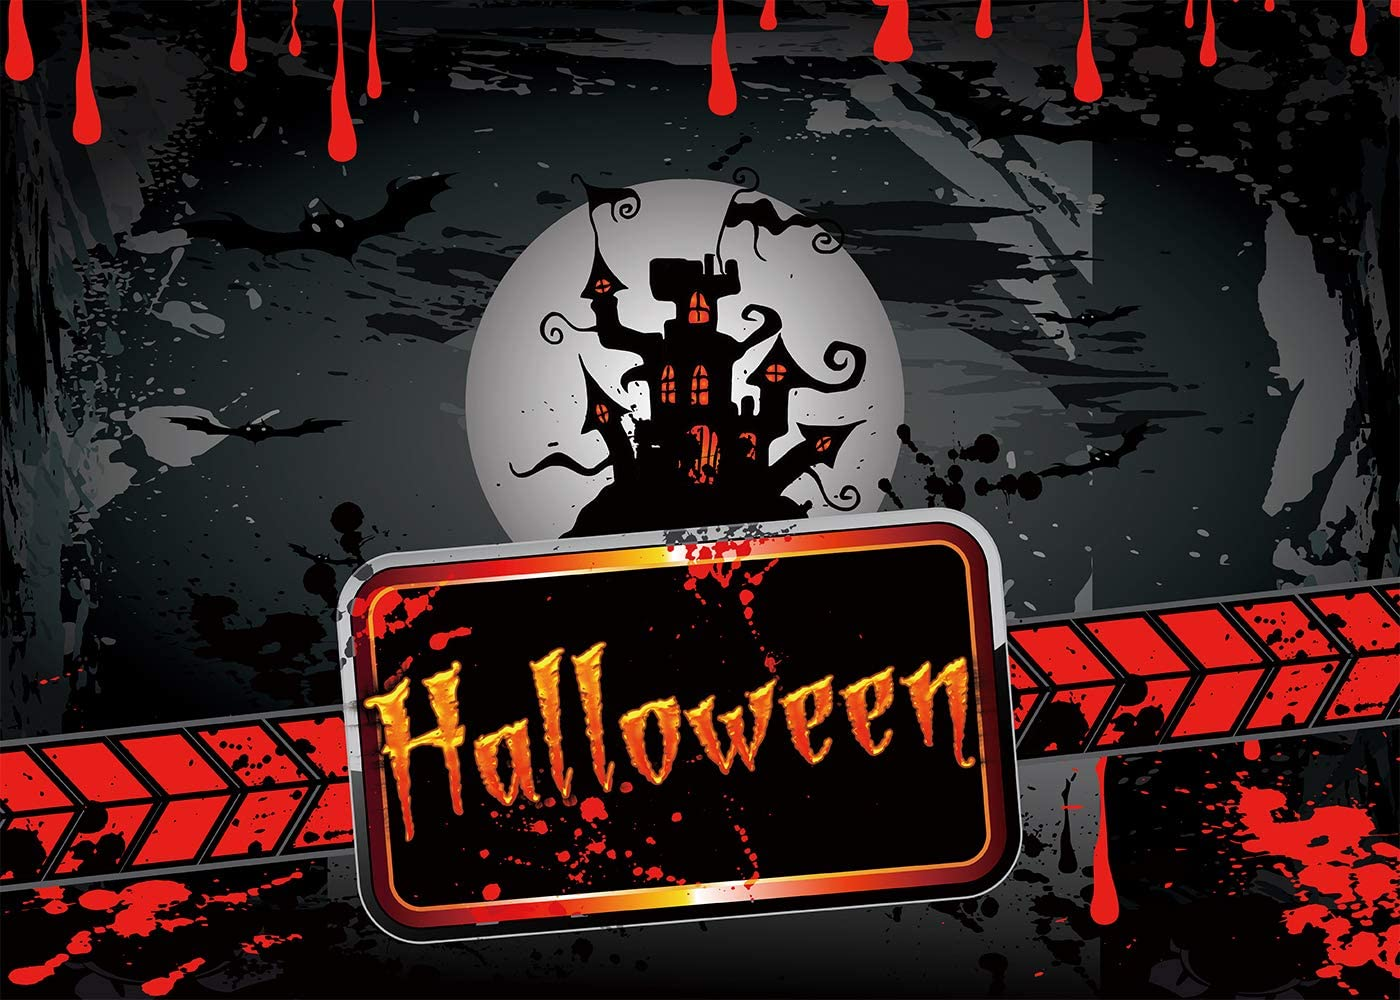 FUERMOR Background 7x5ft Horrible Halloween Banner View Photography Backdrop Children Party Cosplay Photo Shooting Props WQFU019